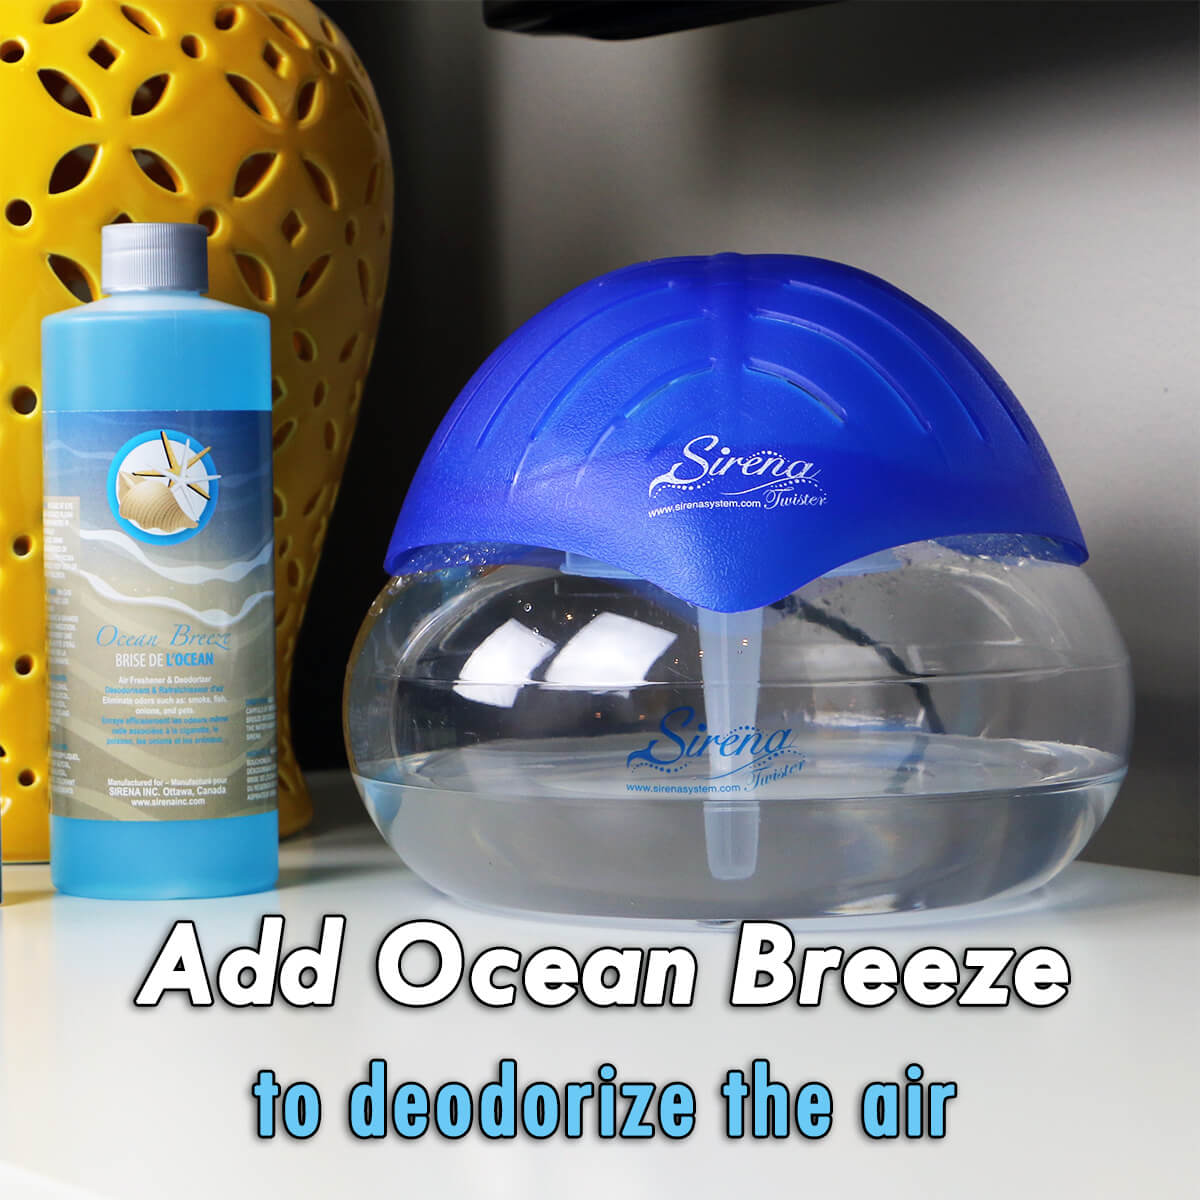 Sirena Twister Air Purifier